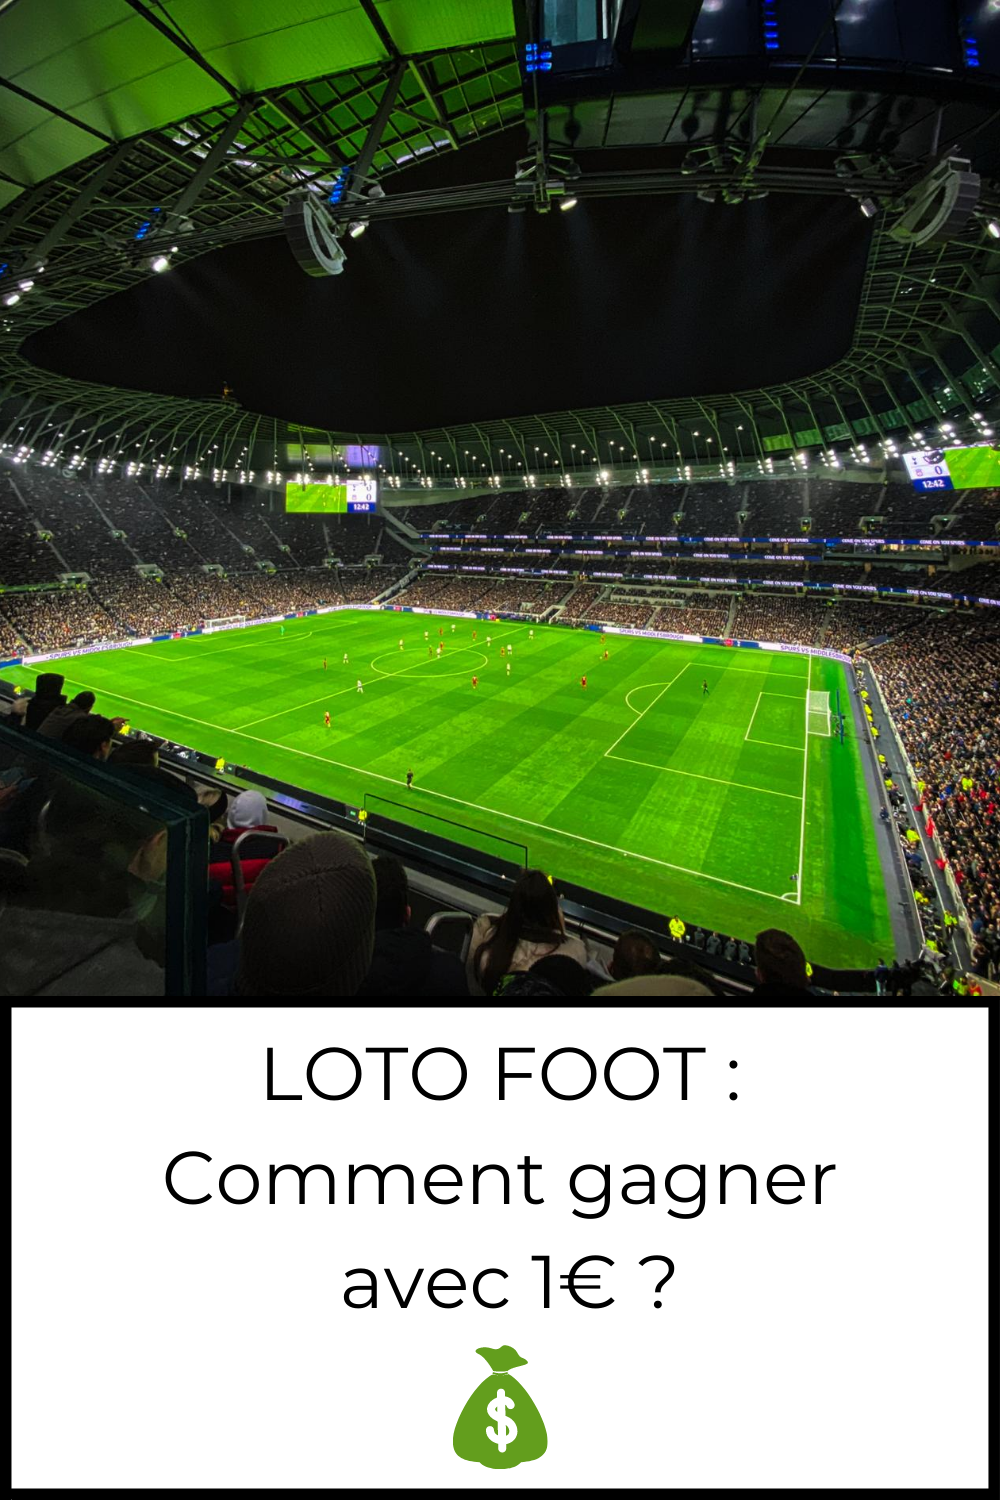 Comment Gagner Au Loto Foot : comment, gagner, Comment, Gagner, Soccer, Field,, Hockey